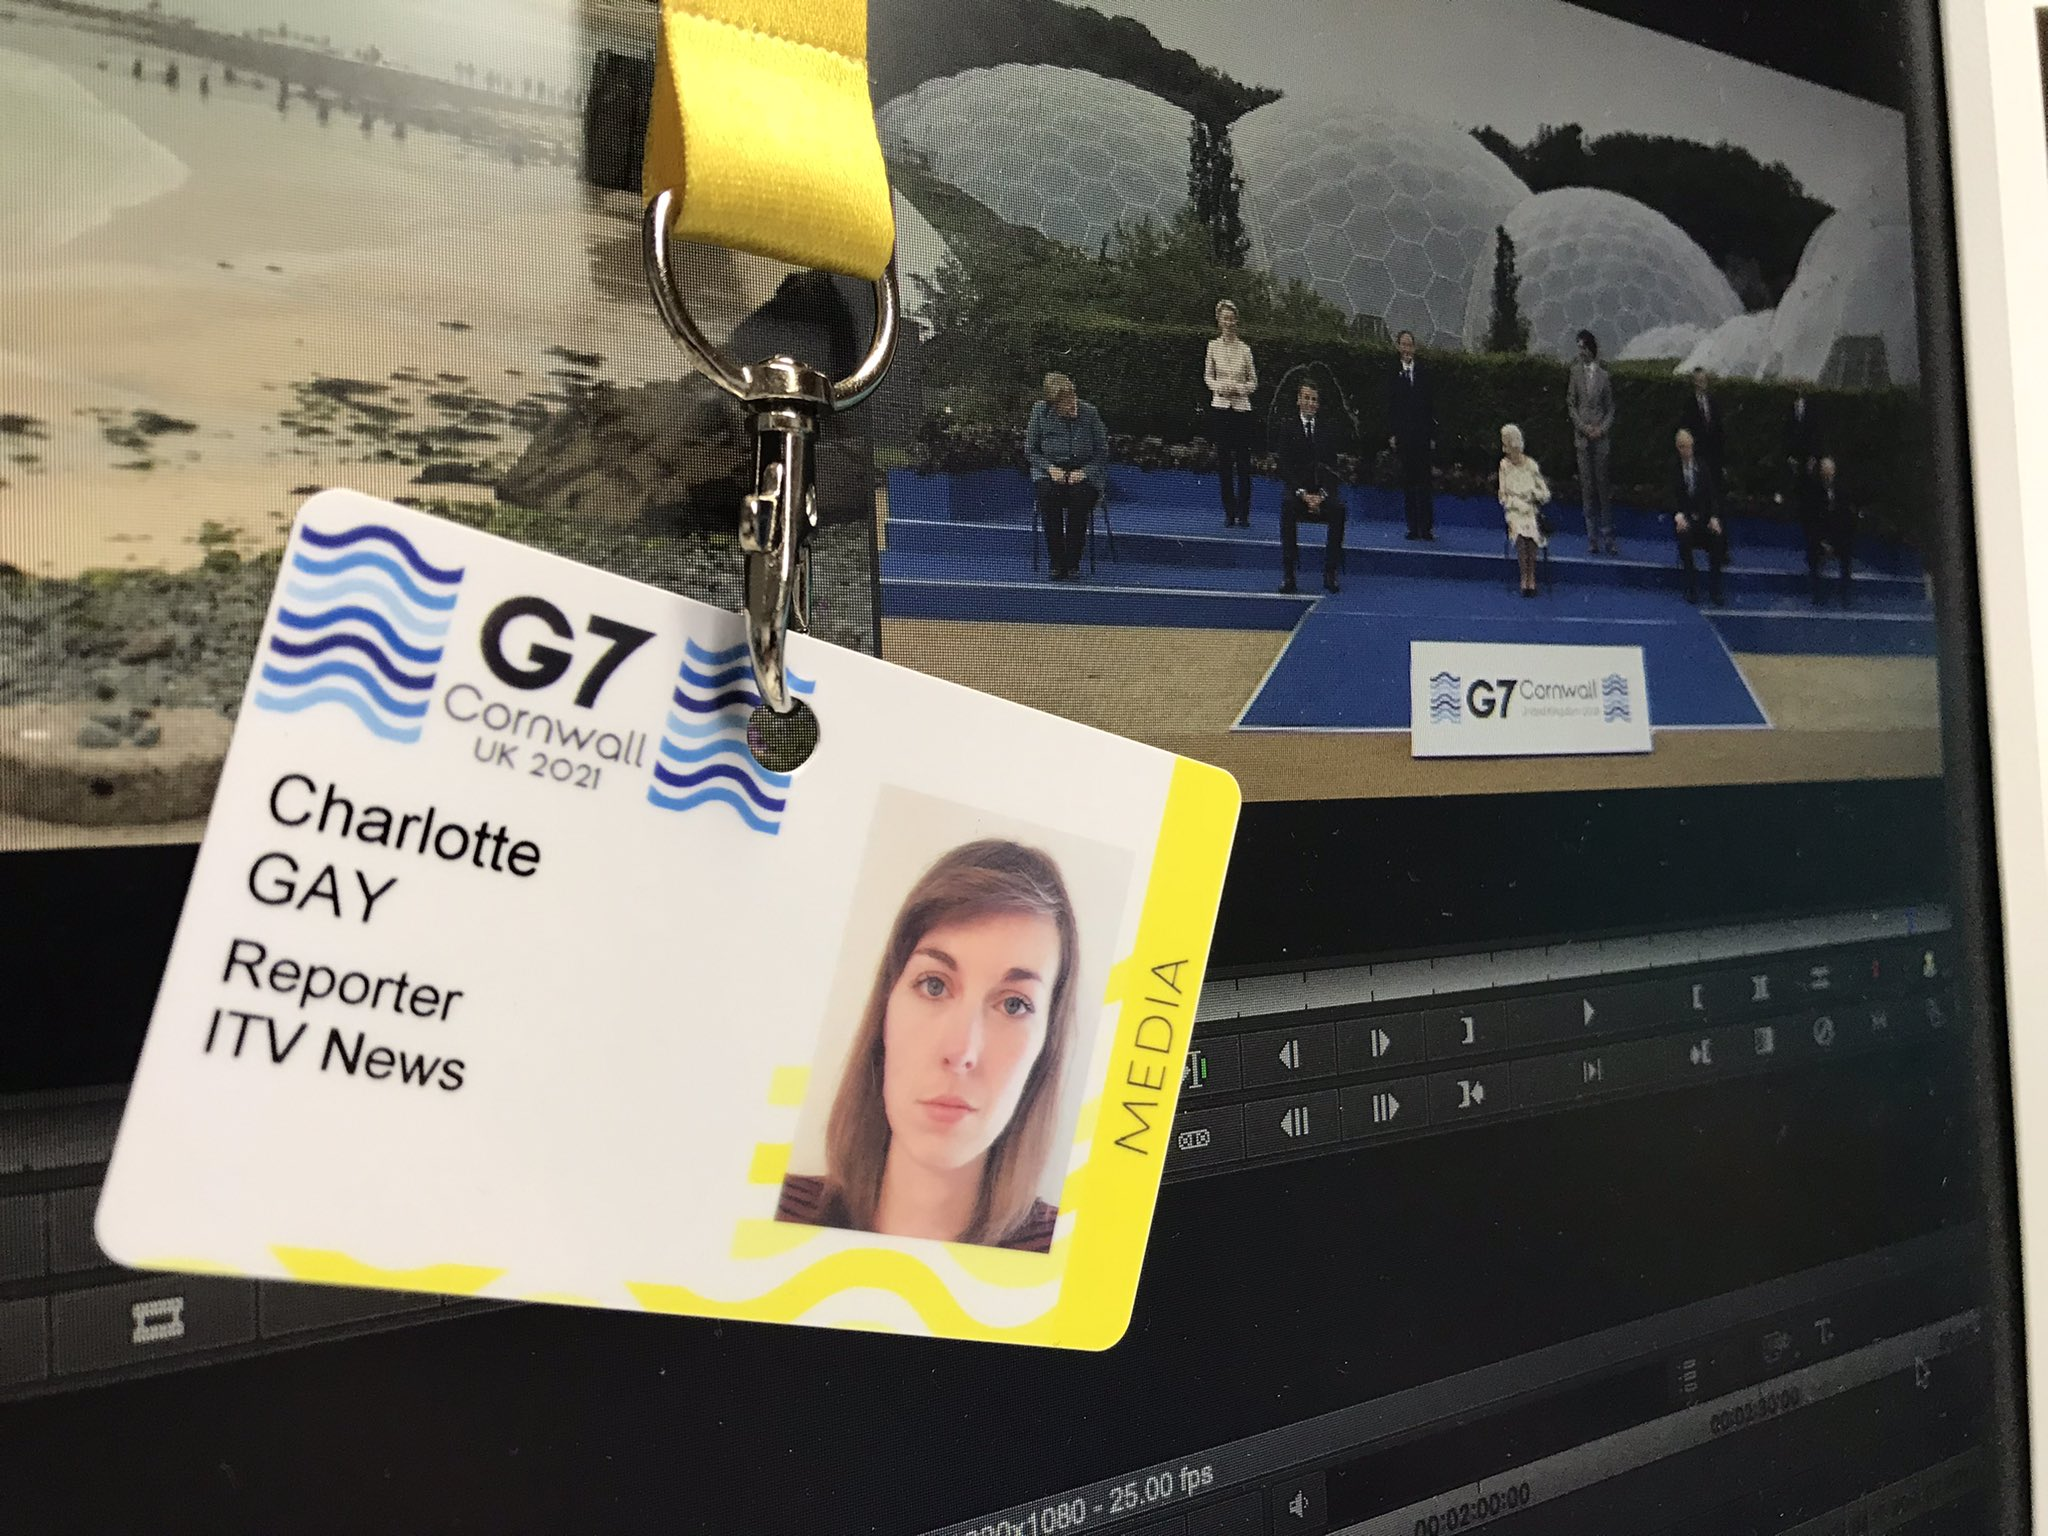 Charlotte Gay (2017) has the full G7 experience